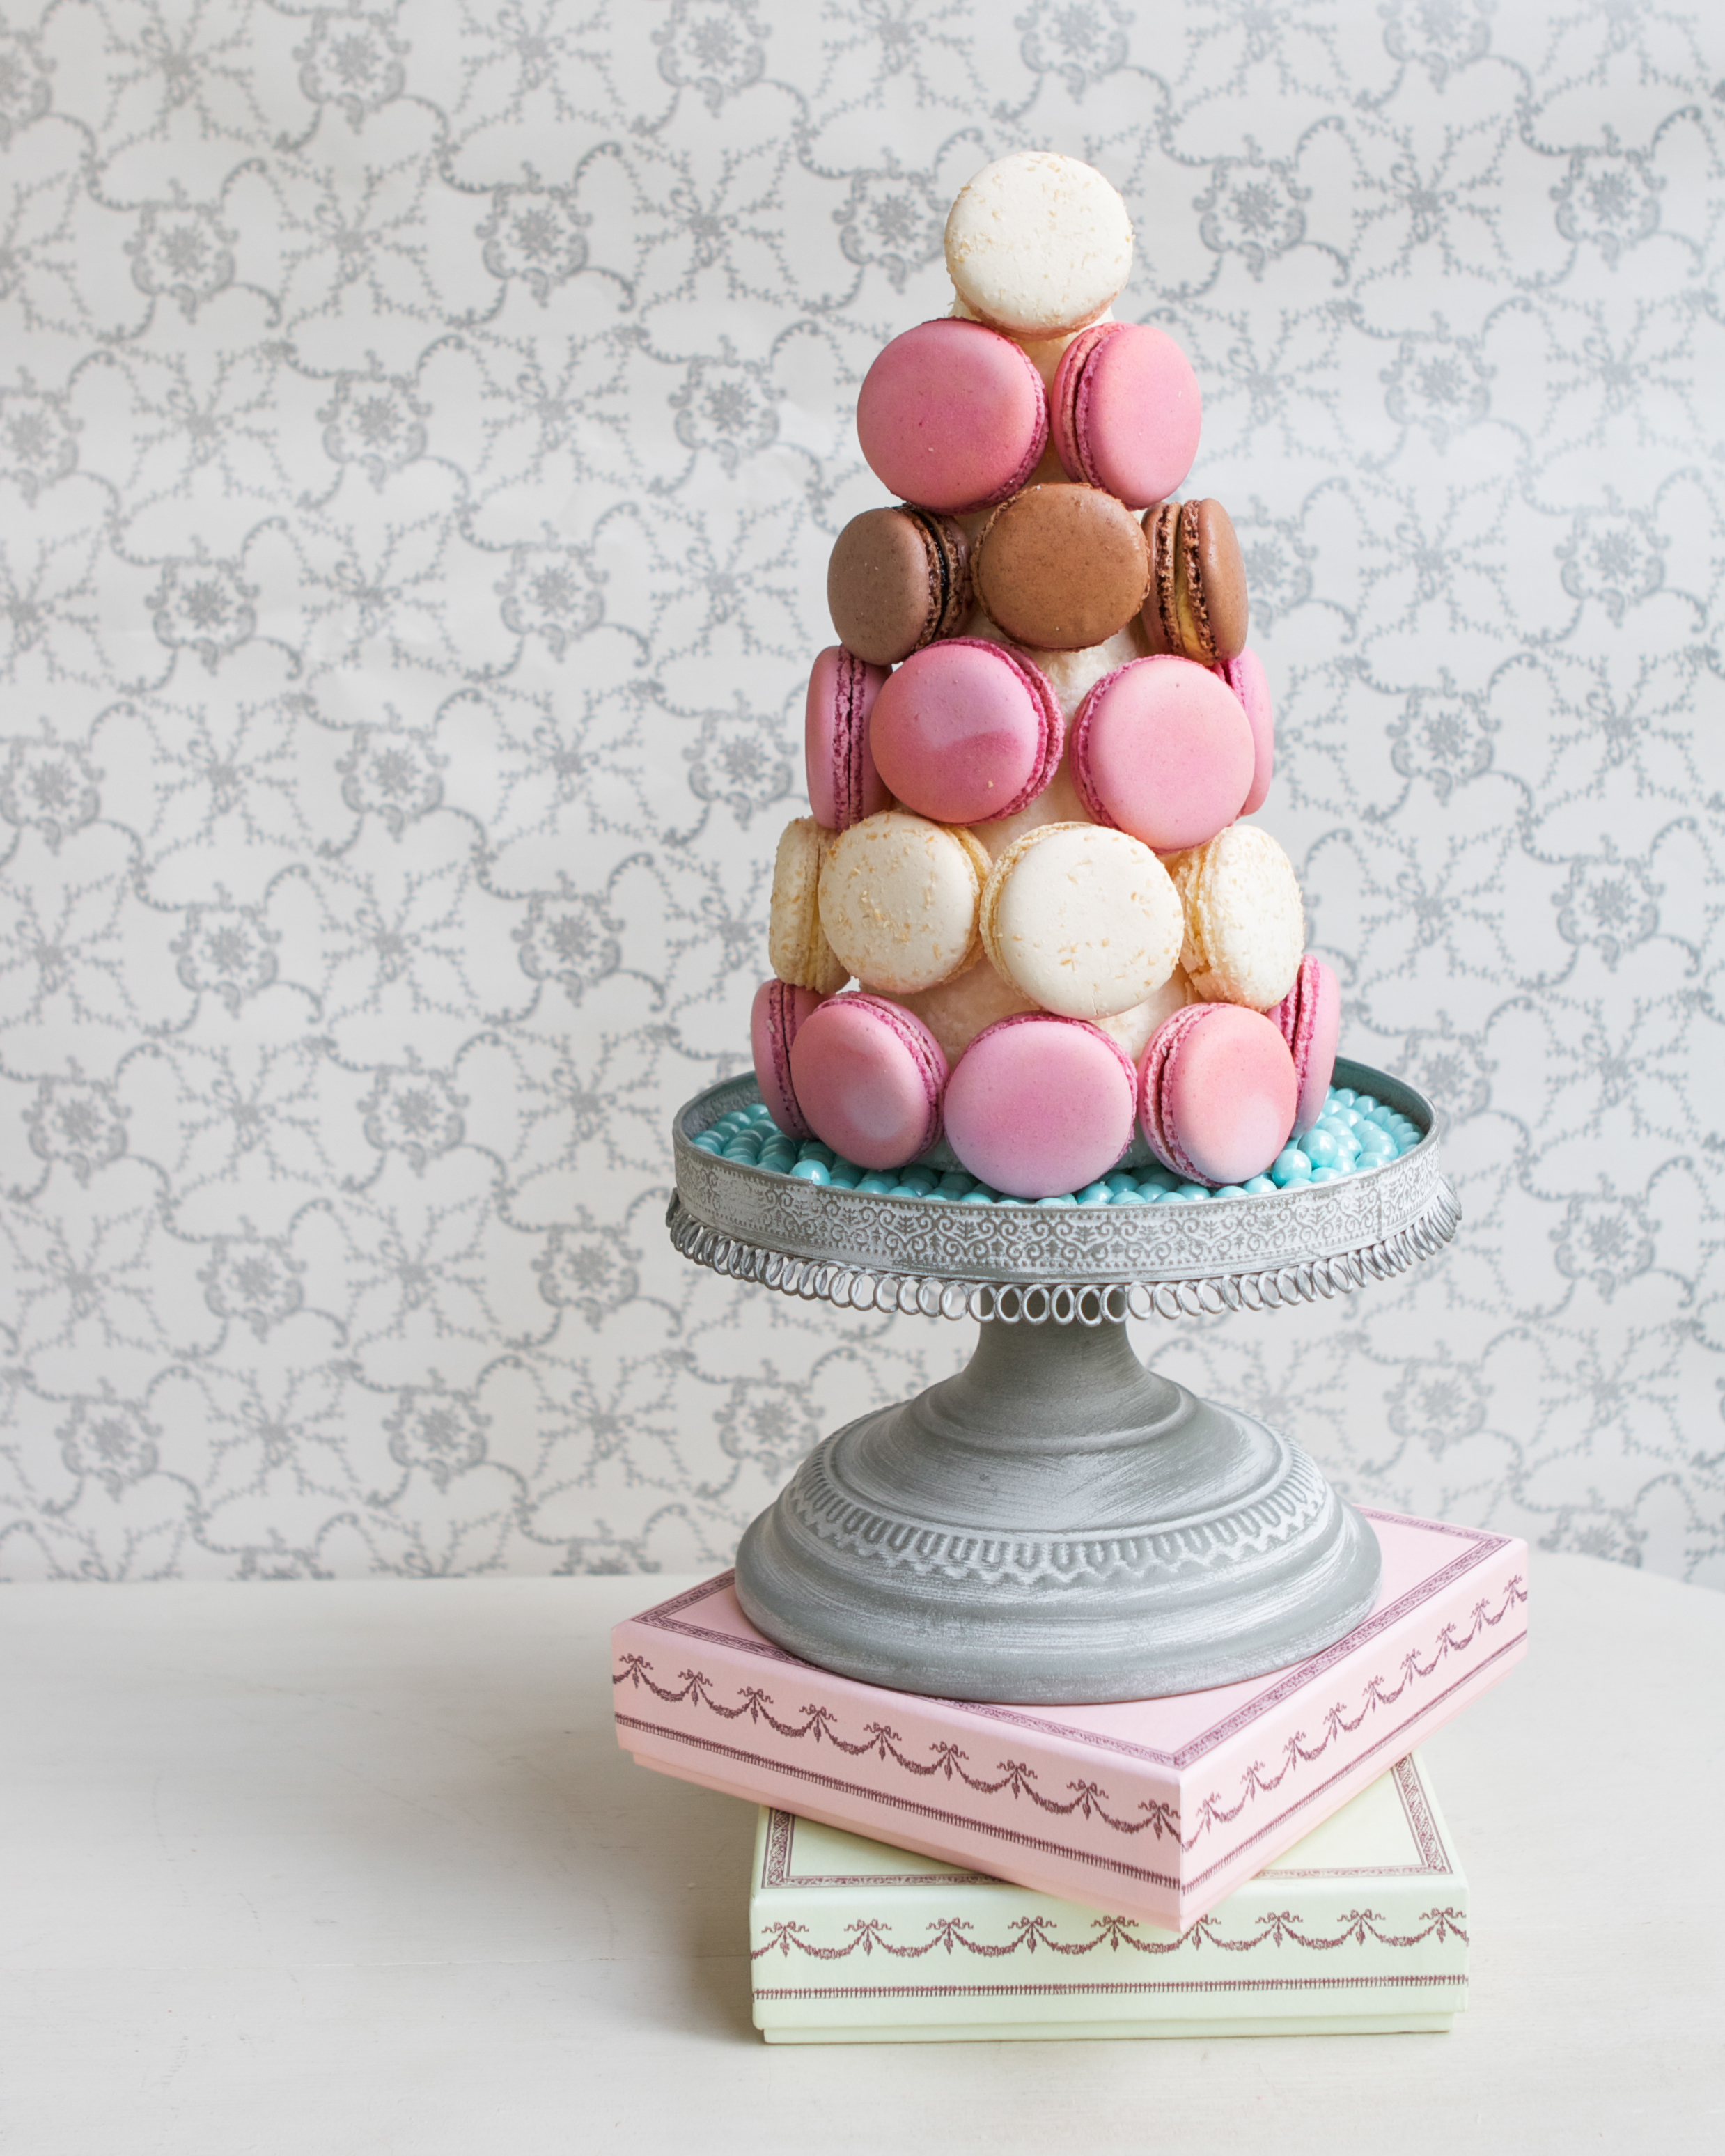 macaroon cake stand - photo #32